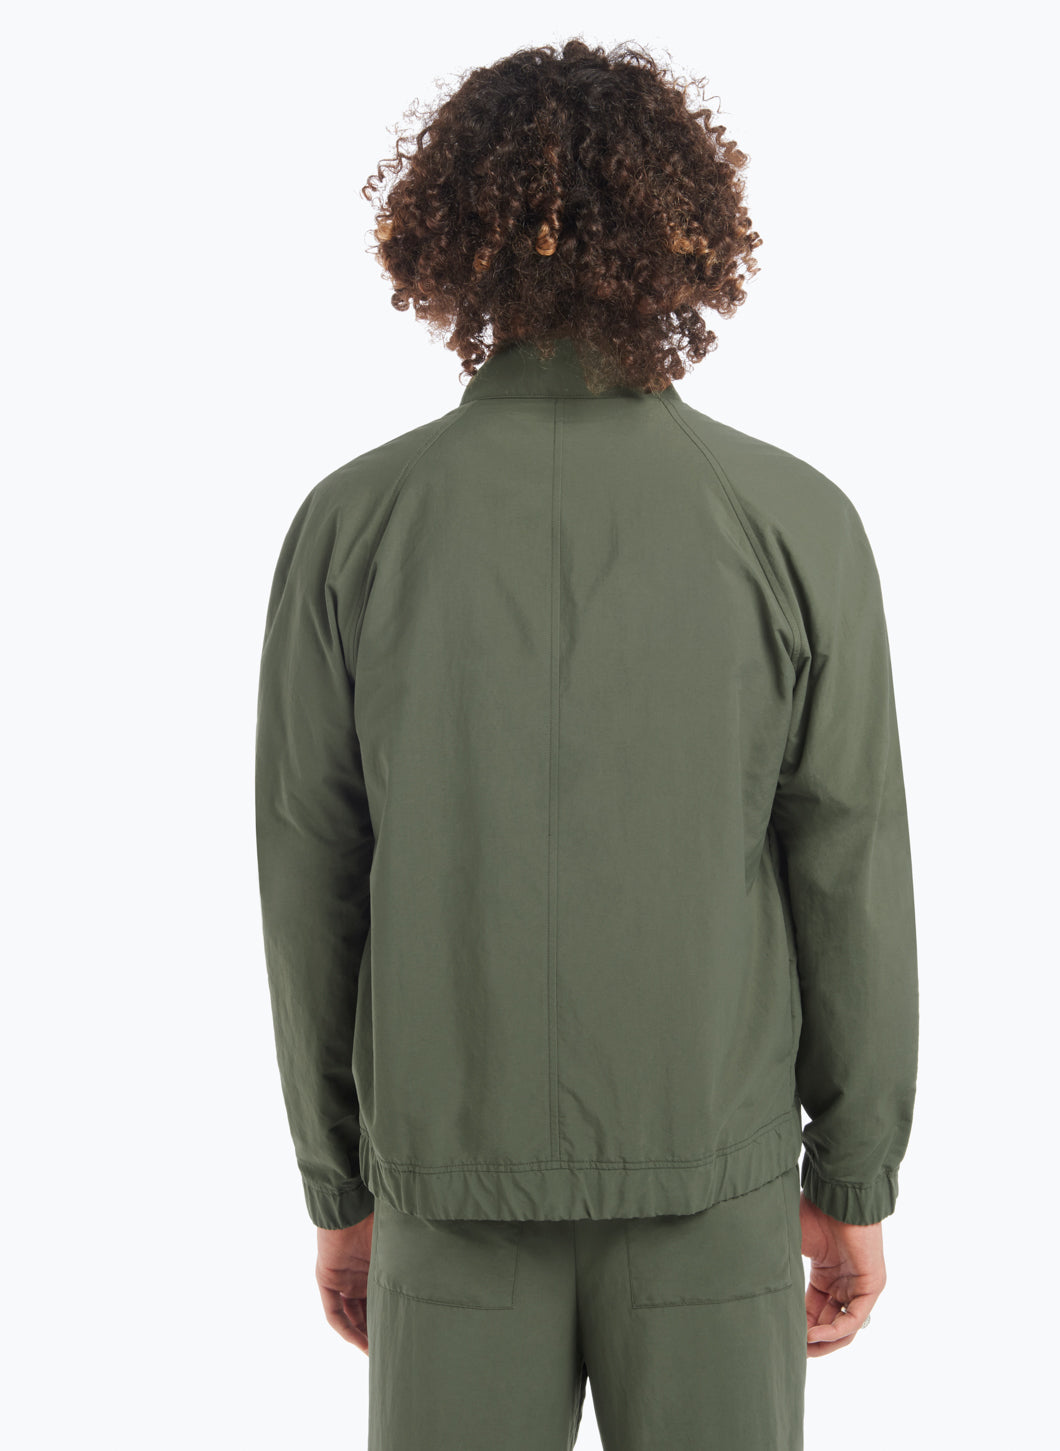 Funnel Neck Bomber Jacket in Olive Technical Material